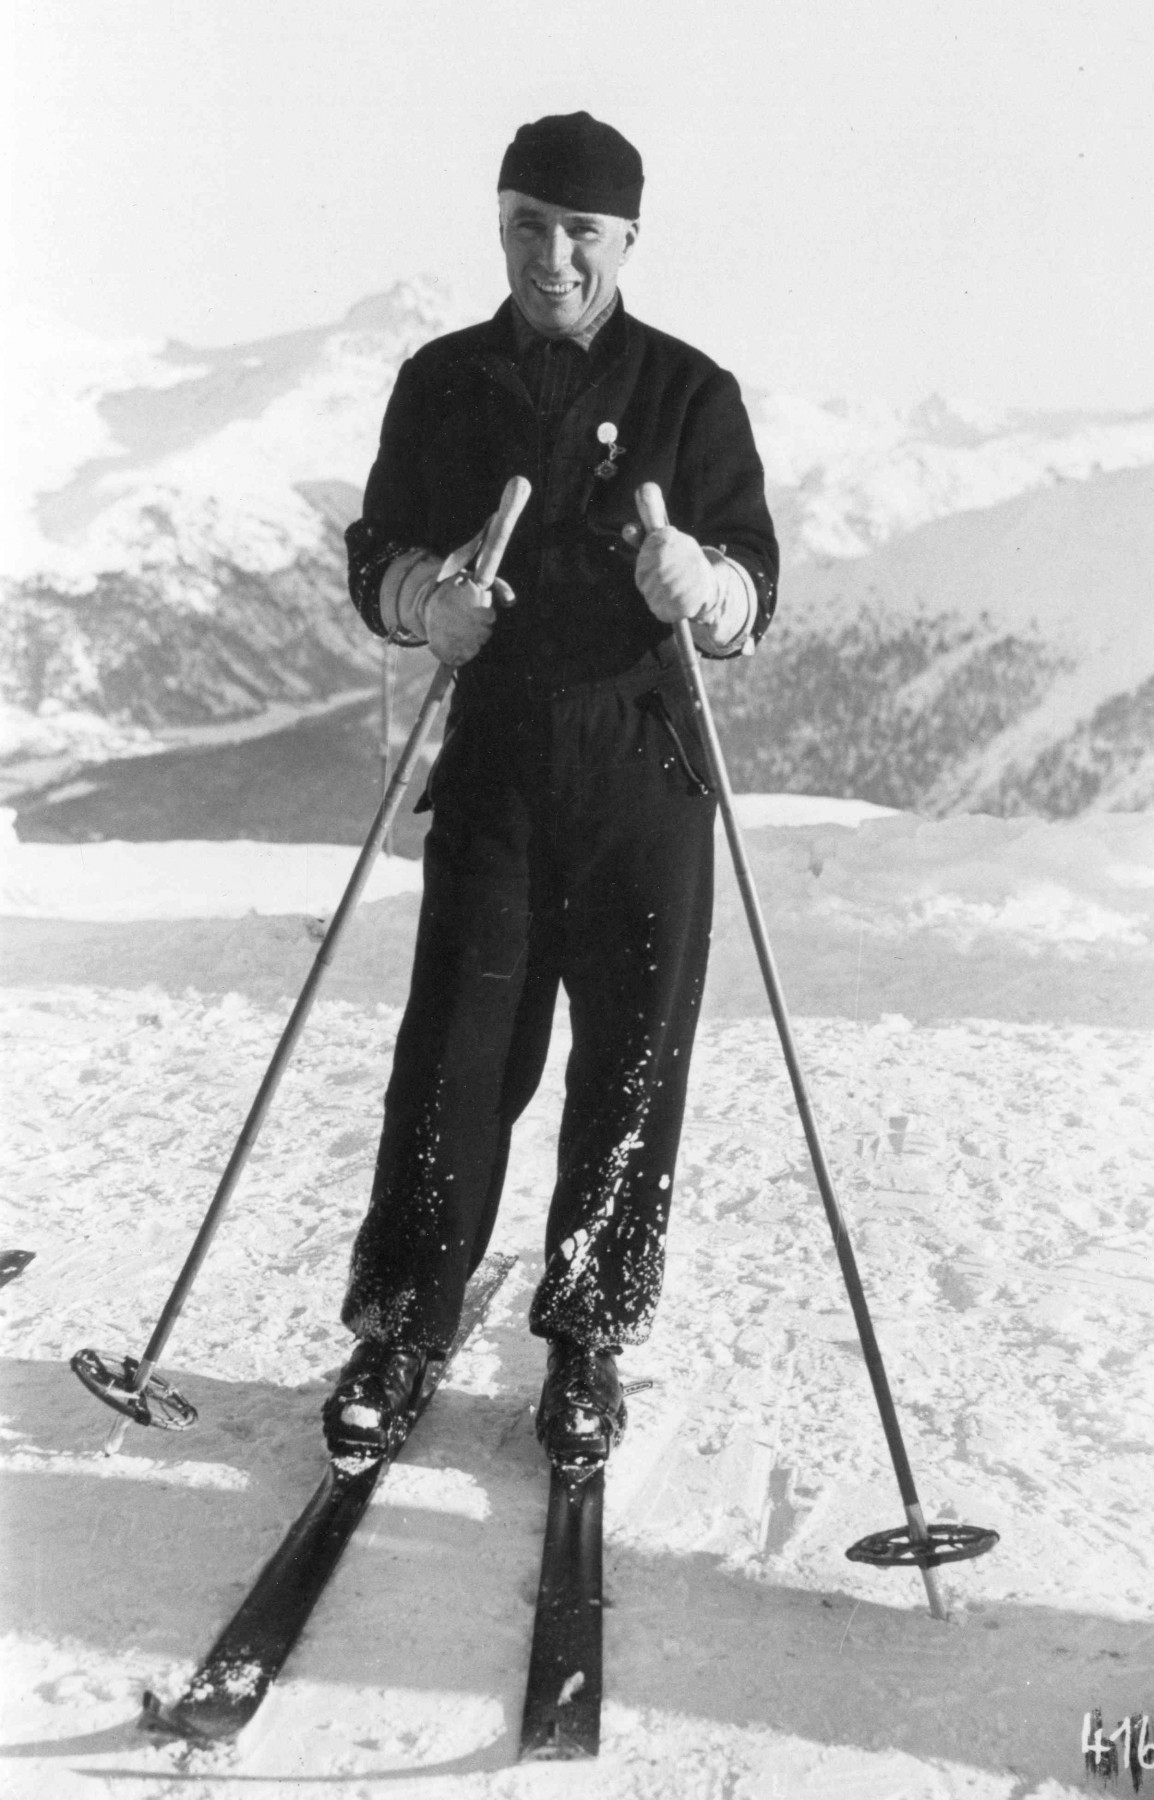 Black and white image of Charlie Chaplin in St. Moritz